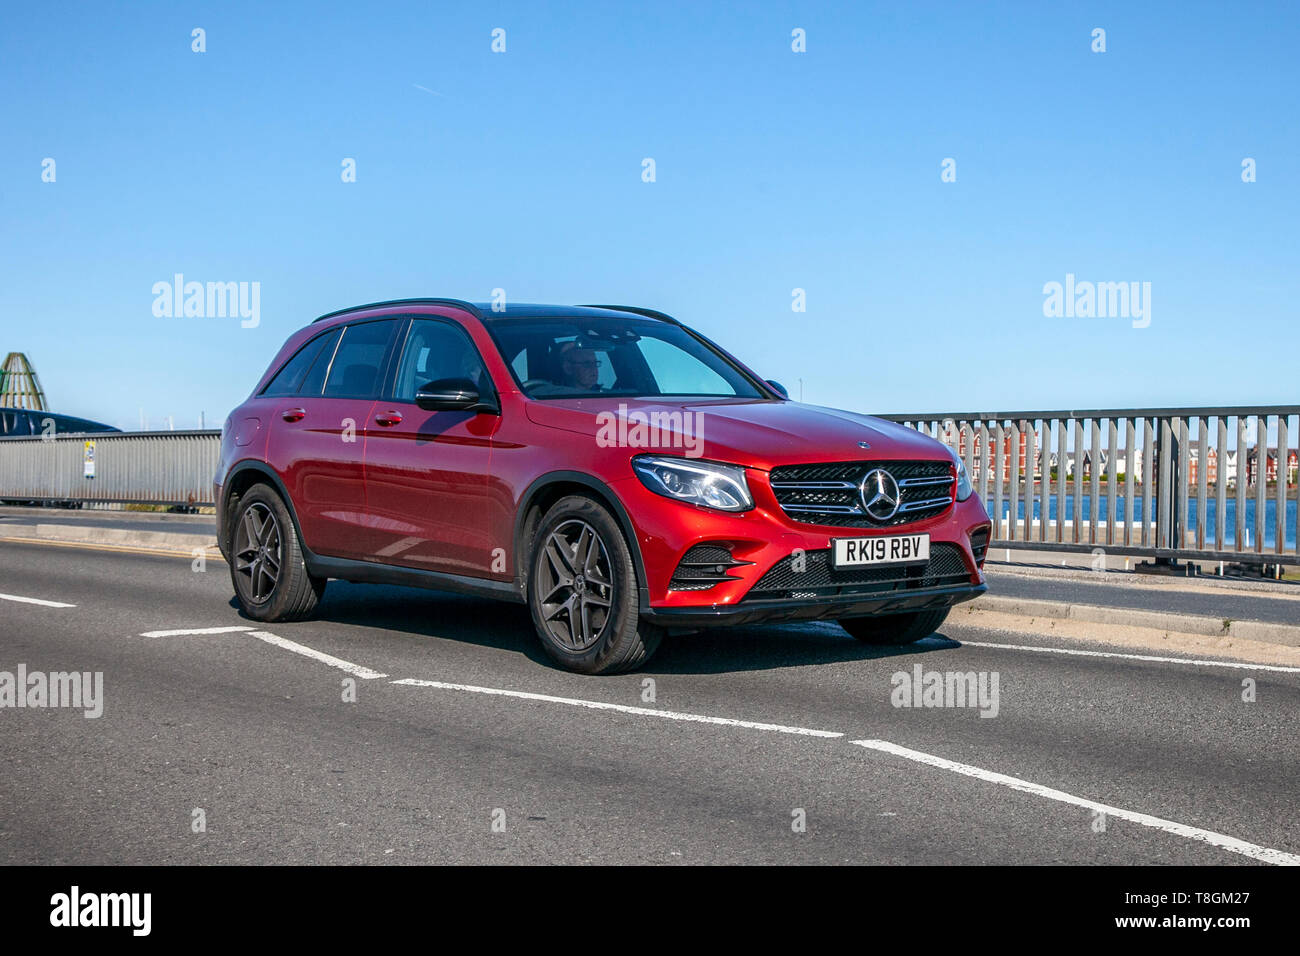 Red 2019 Mercedes-Benz GLC 250 AMG Night Edition on the seafront promenade, Southport, Merseyside, UK - Stock Image